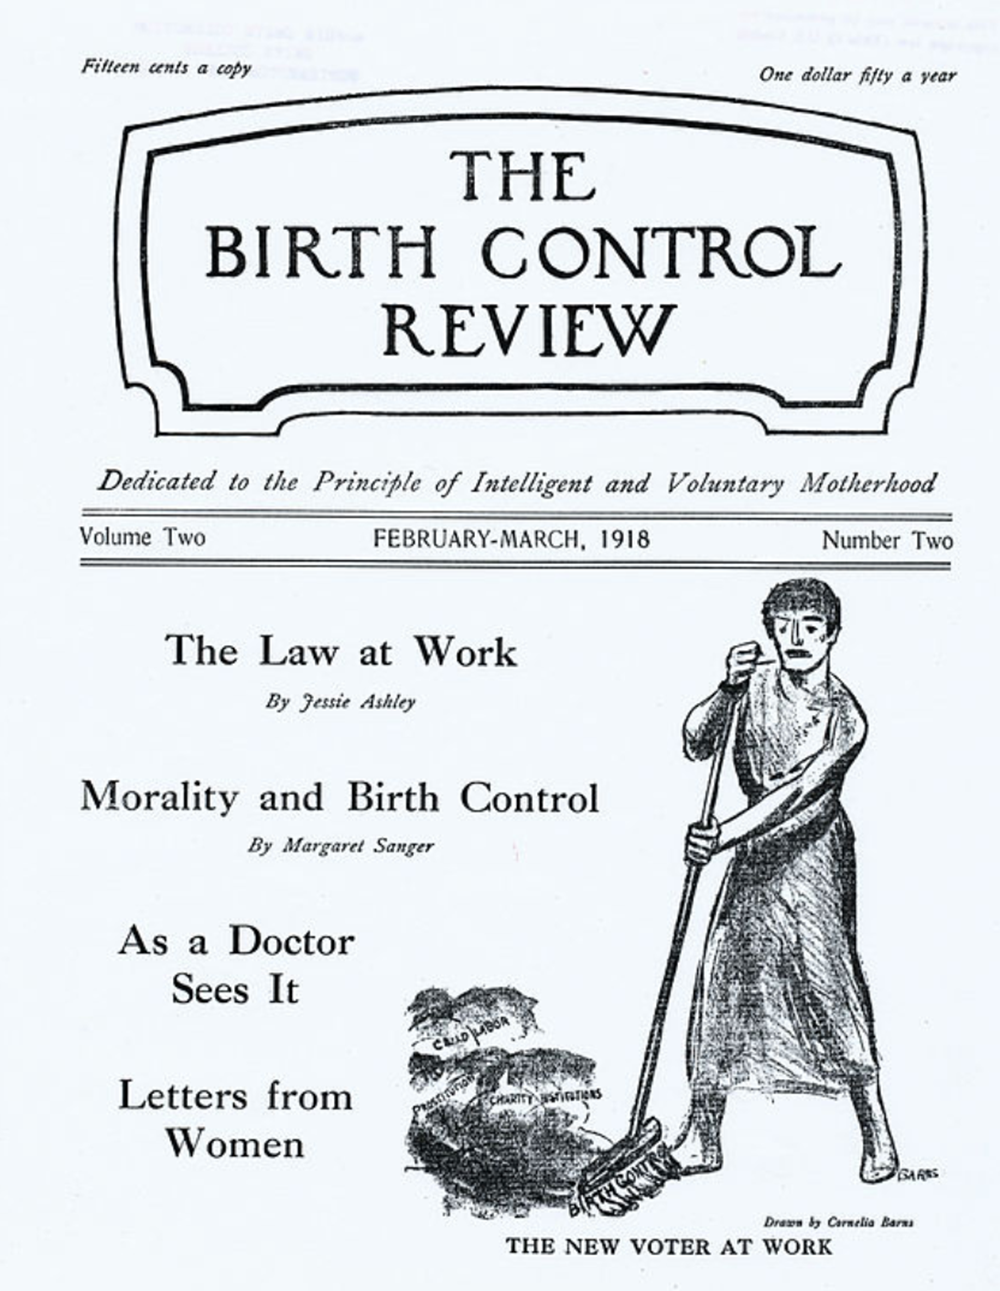 """The New Voter at Work,"" by Cornelia Barns, The Birth Control Review, February–March 1918."